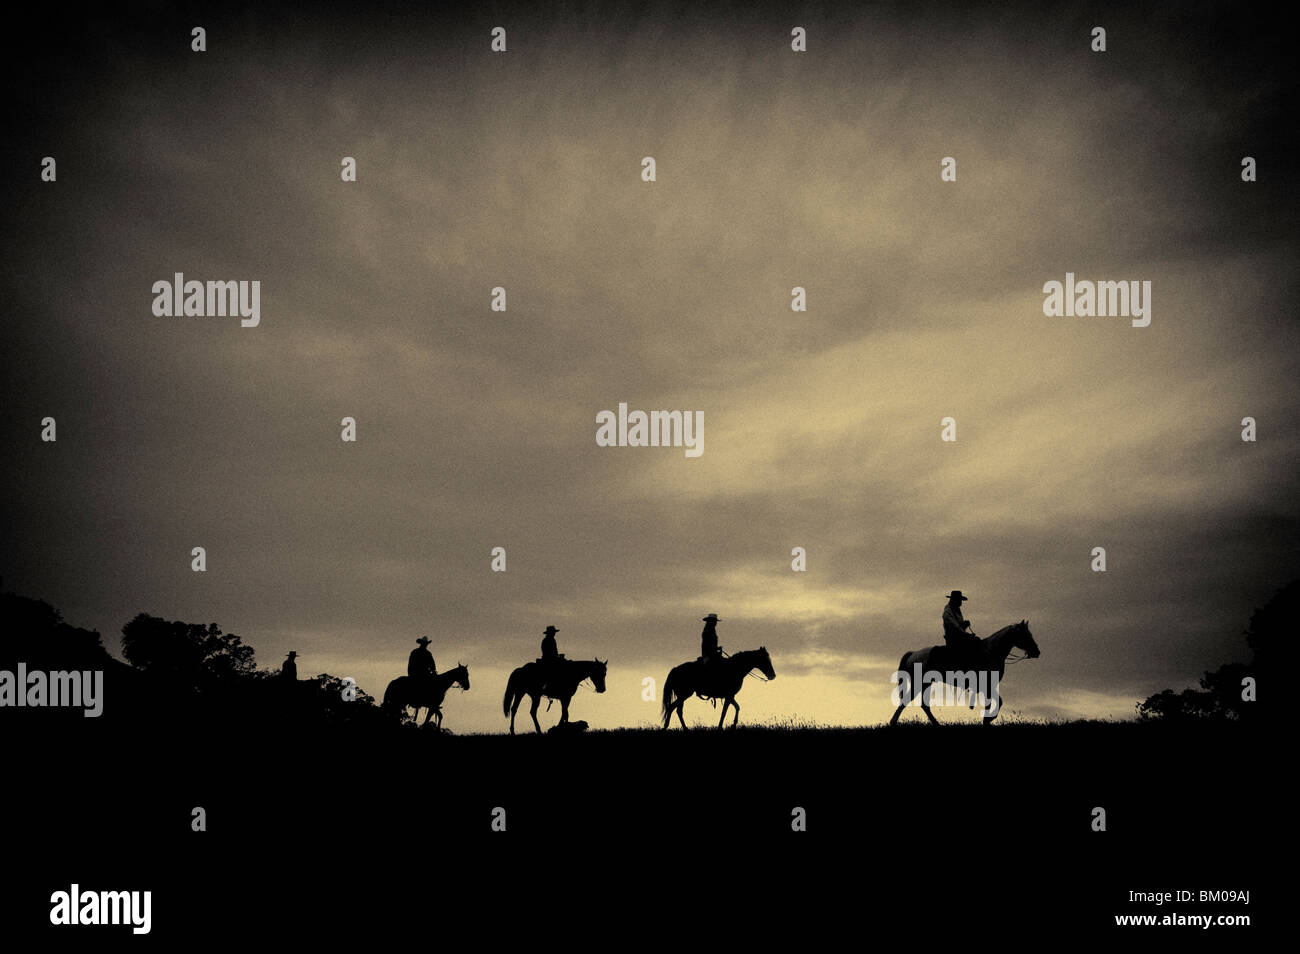 Horses and cowboys on their way home at sunset Stock Photo